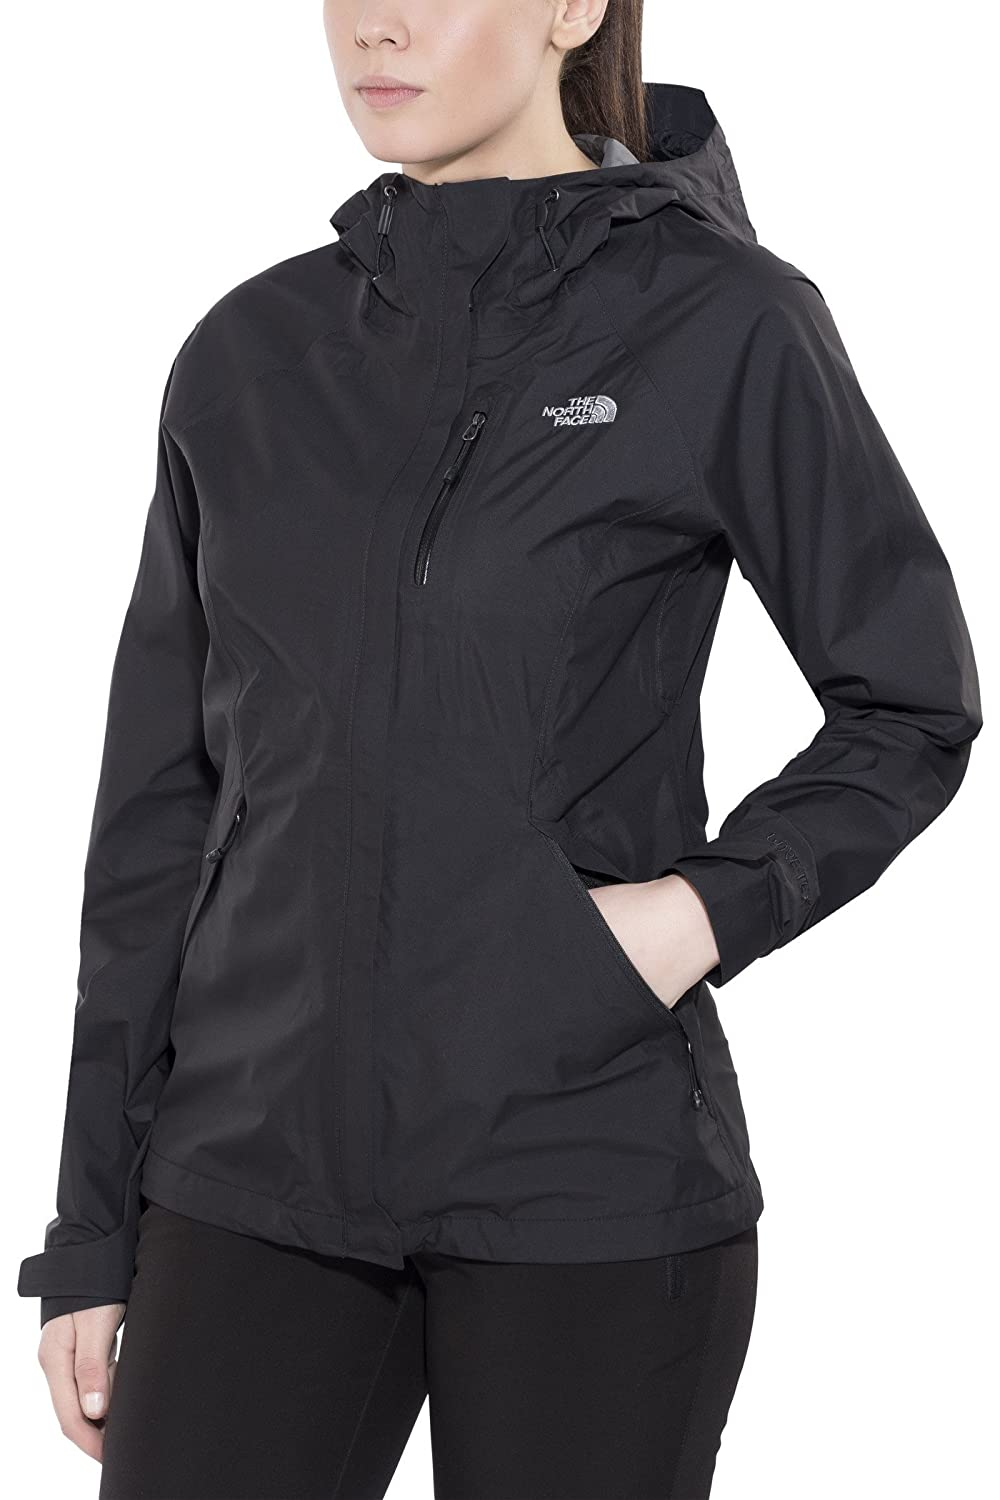 The North Face Outerwear TNF Chaqueta, Mujer, Negro (Tnf ...